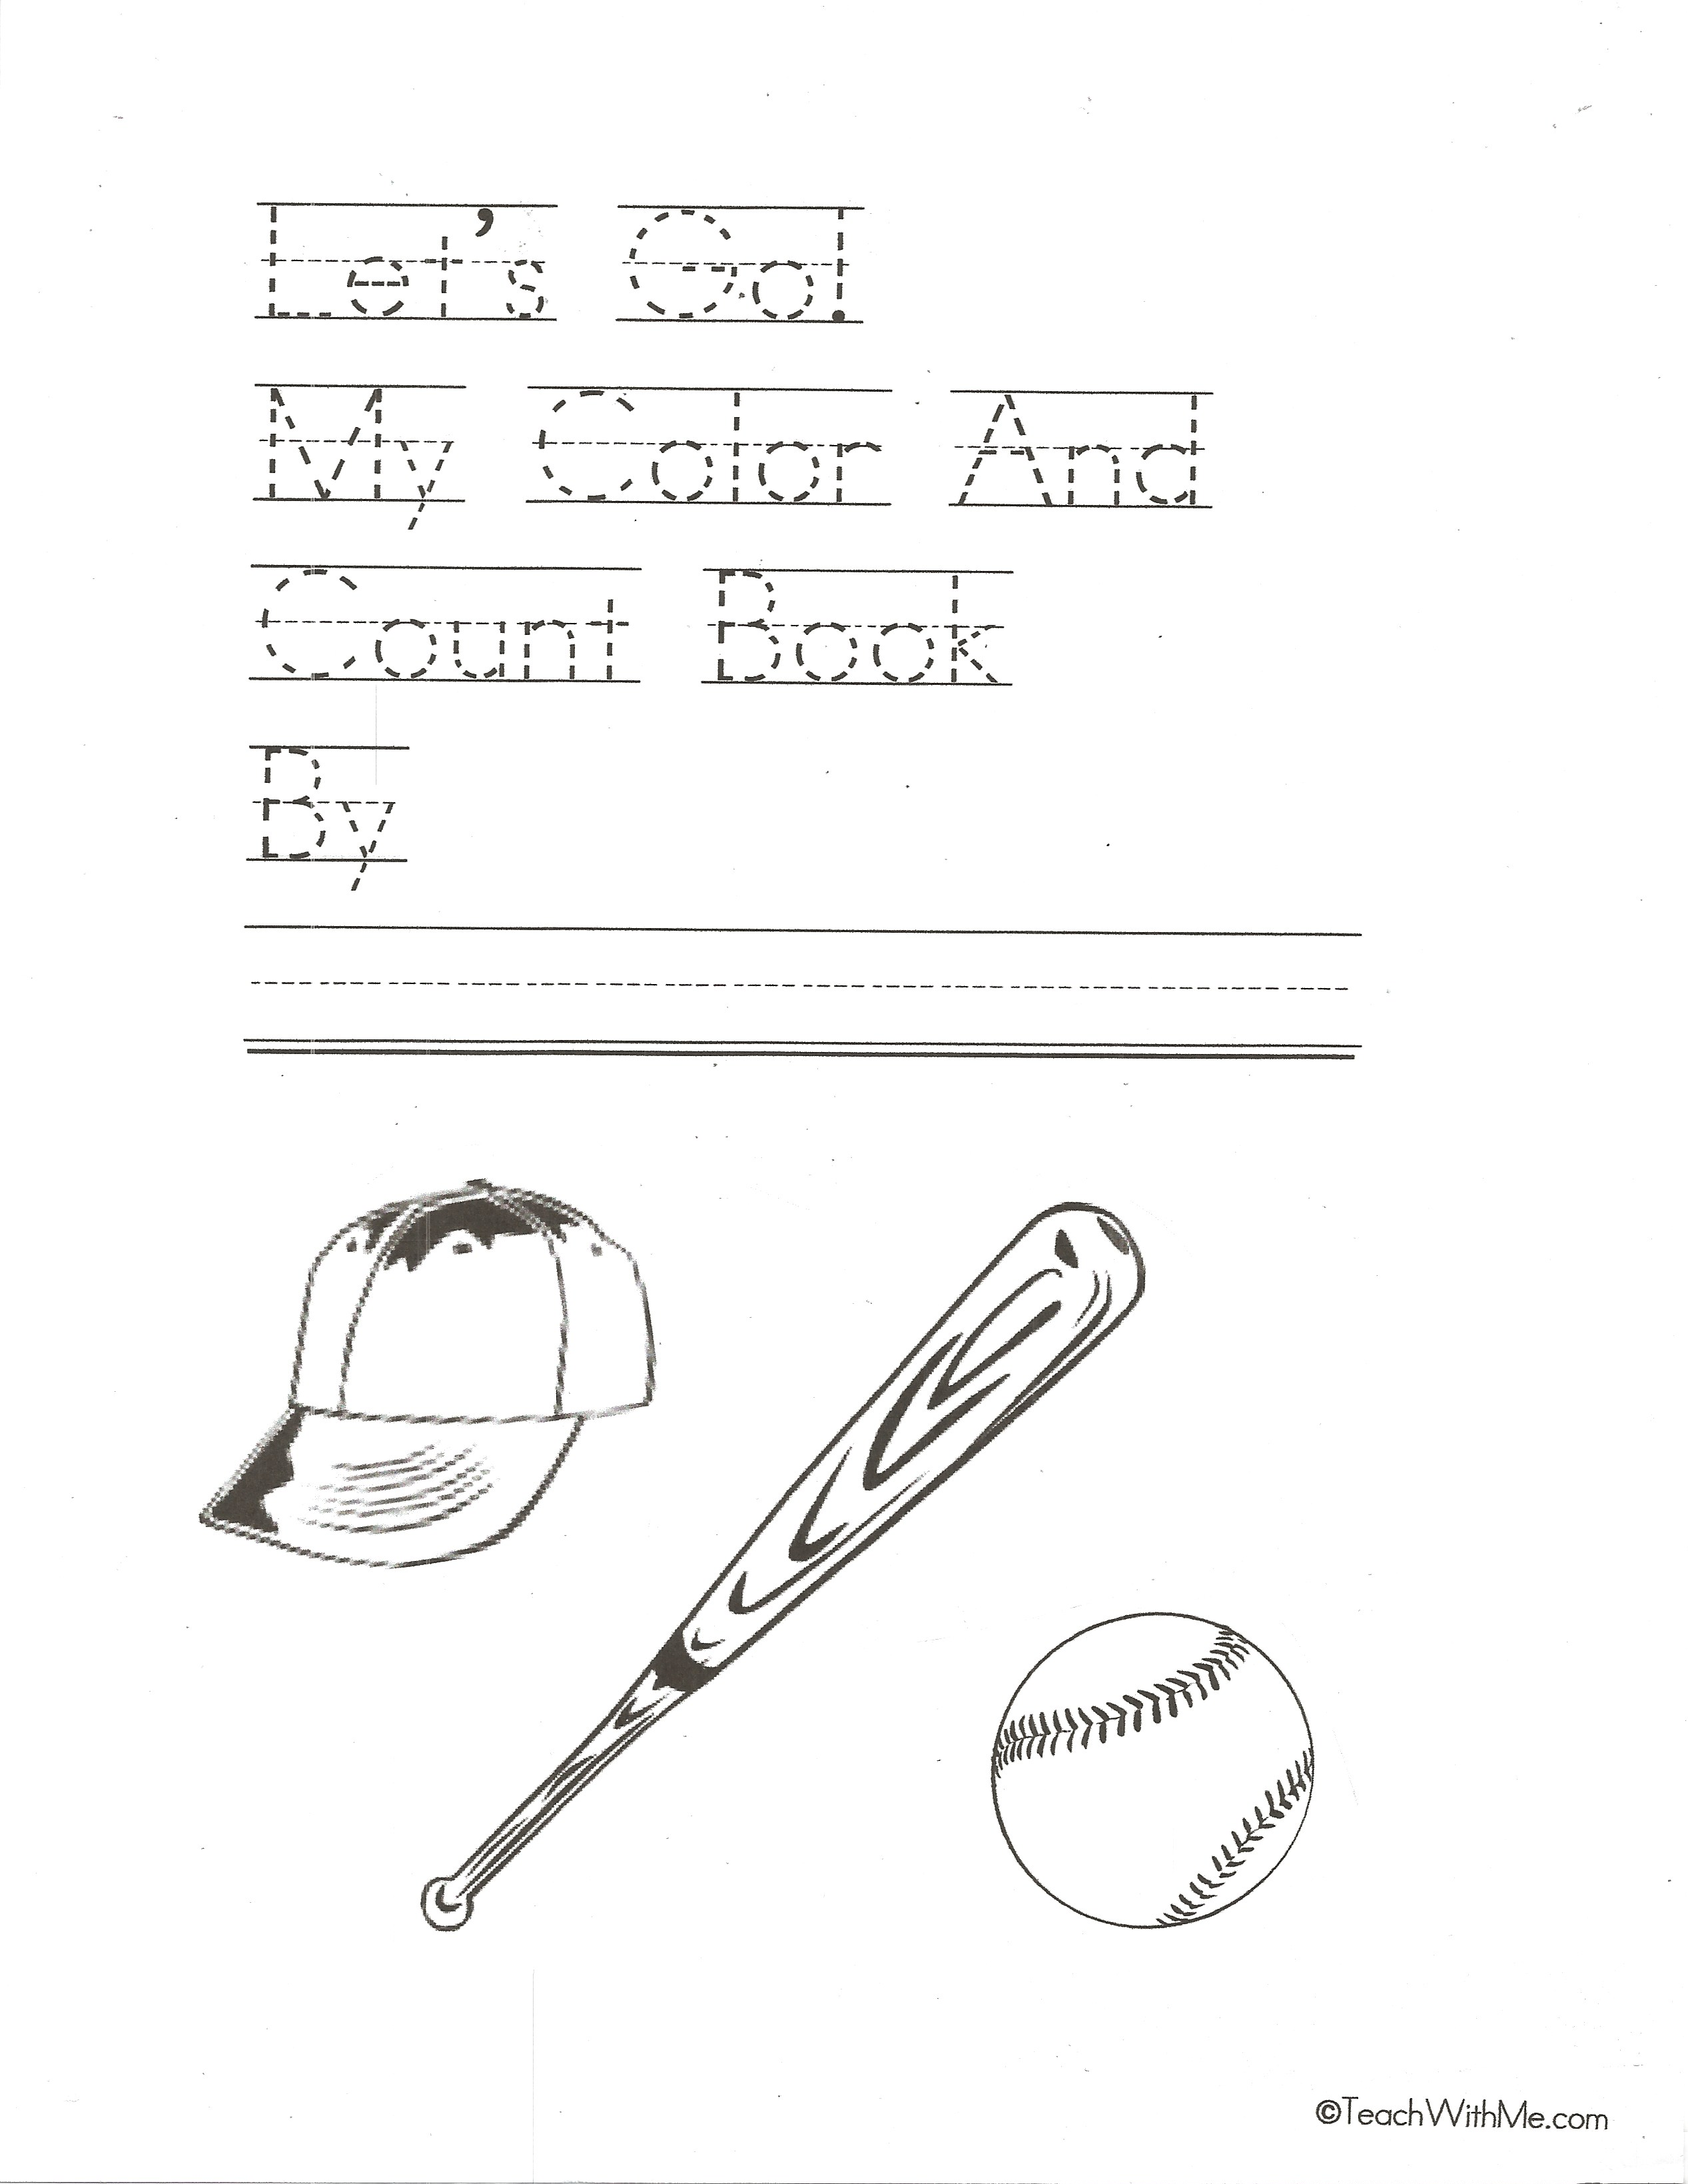 easy readers, flower activities, counting booklets, color booklets, color activities, counting activities baseball activities, April Daily 5 activities, May Daily 5 activies, reading center activities, fruit activities, ,